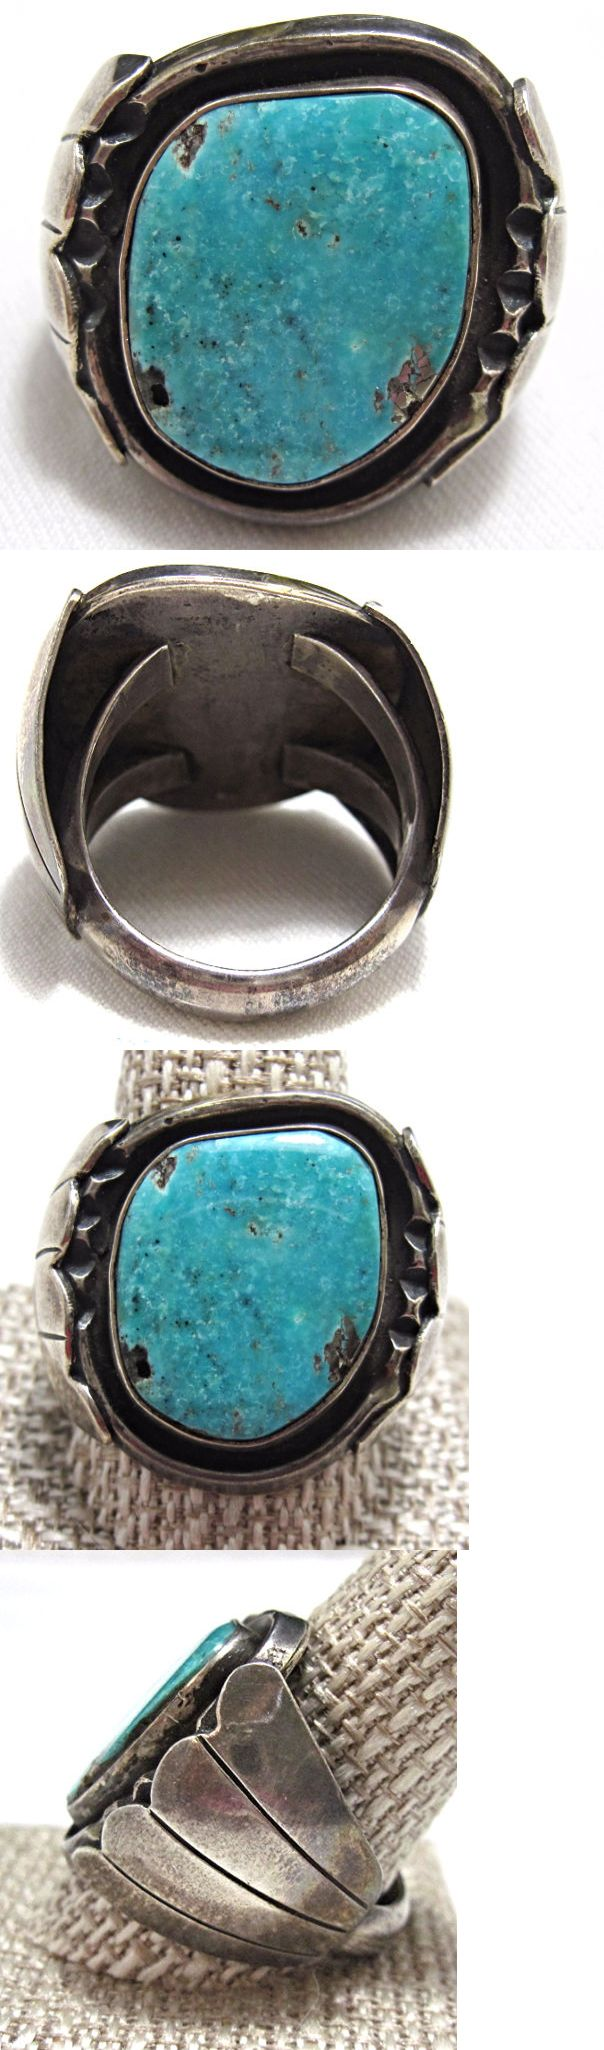 Native American pre-1935 165137: Estate Vintage Sterling Navajo Old Pawn Huge Mens Turquoise Ring Sz 12 Be754 -> BUY IT NOW ONLY: $369 on eBay!